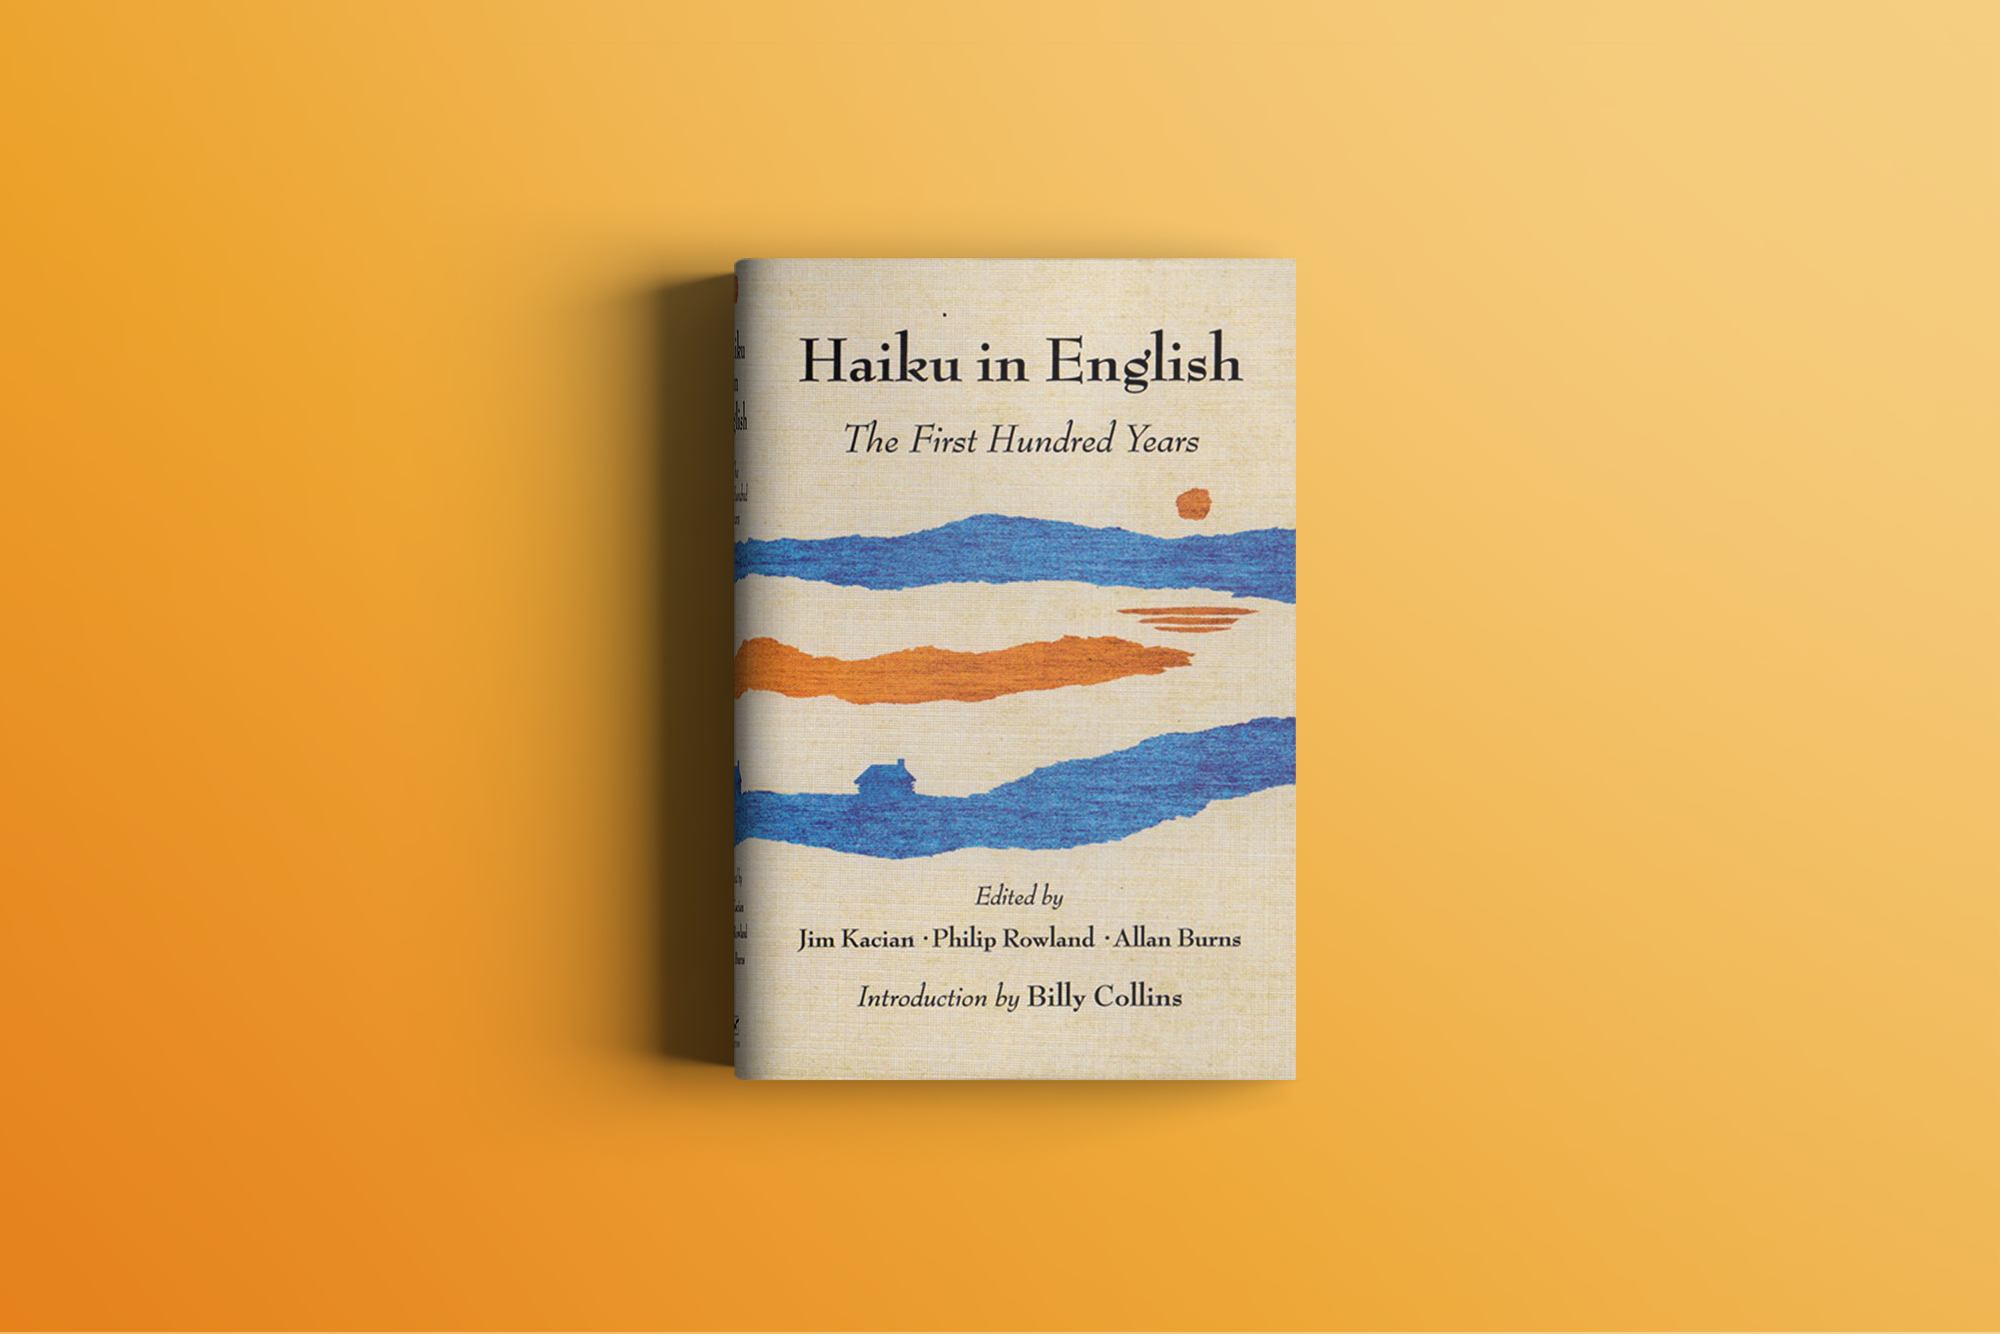 Haiku in English  Book Cover and Jacket Design